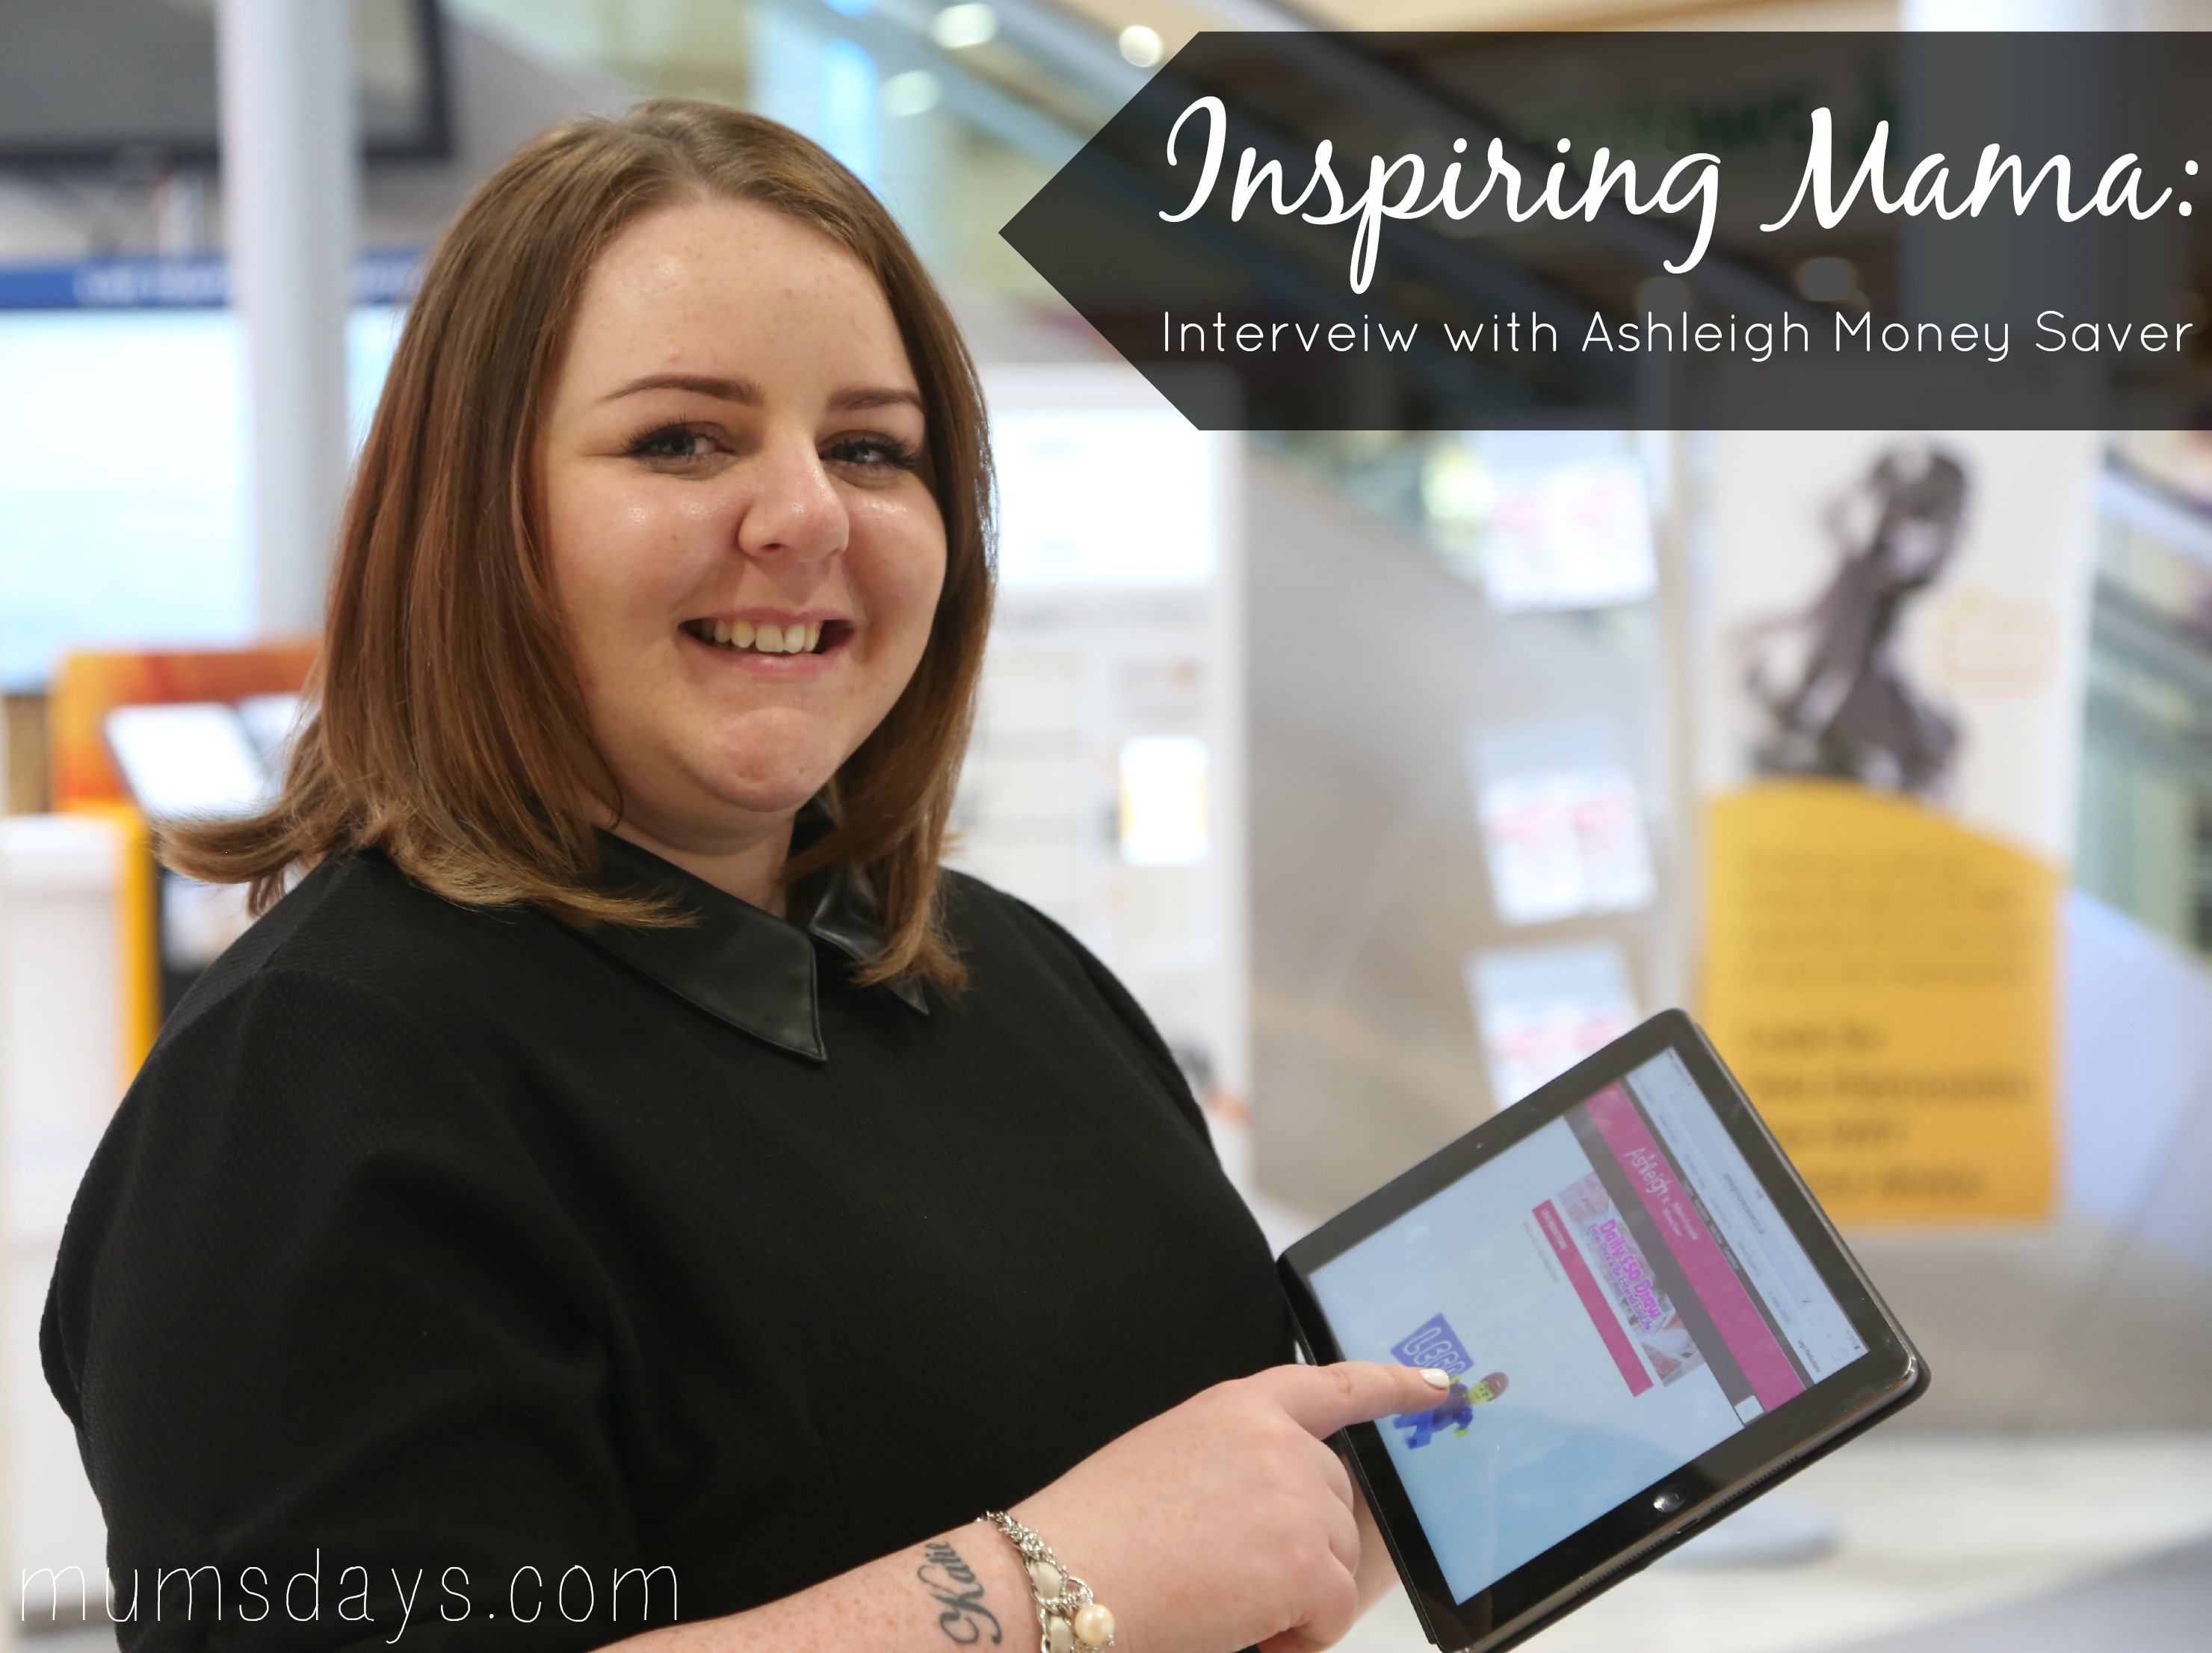 Inspiring Mama - an interview with Ashleigh Swan, Ashleigh Money Saver: http://www.mumsdays.com/ashleigh-money-saver/